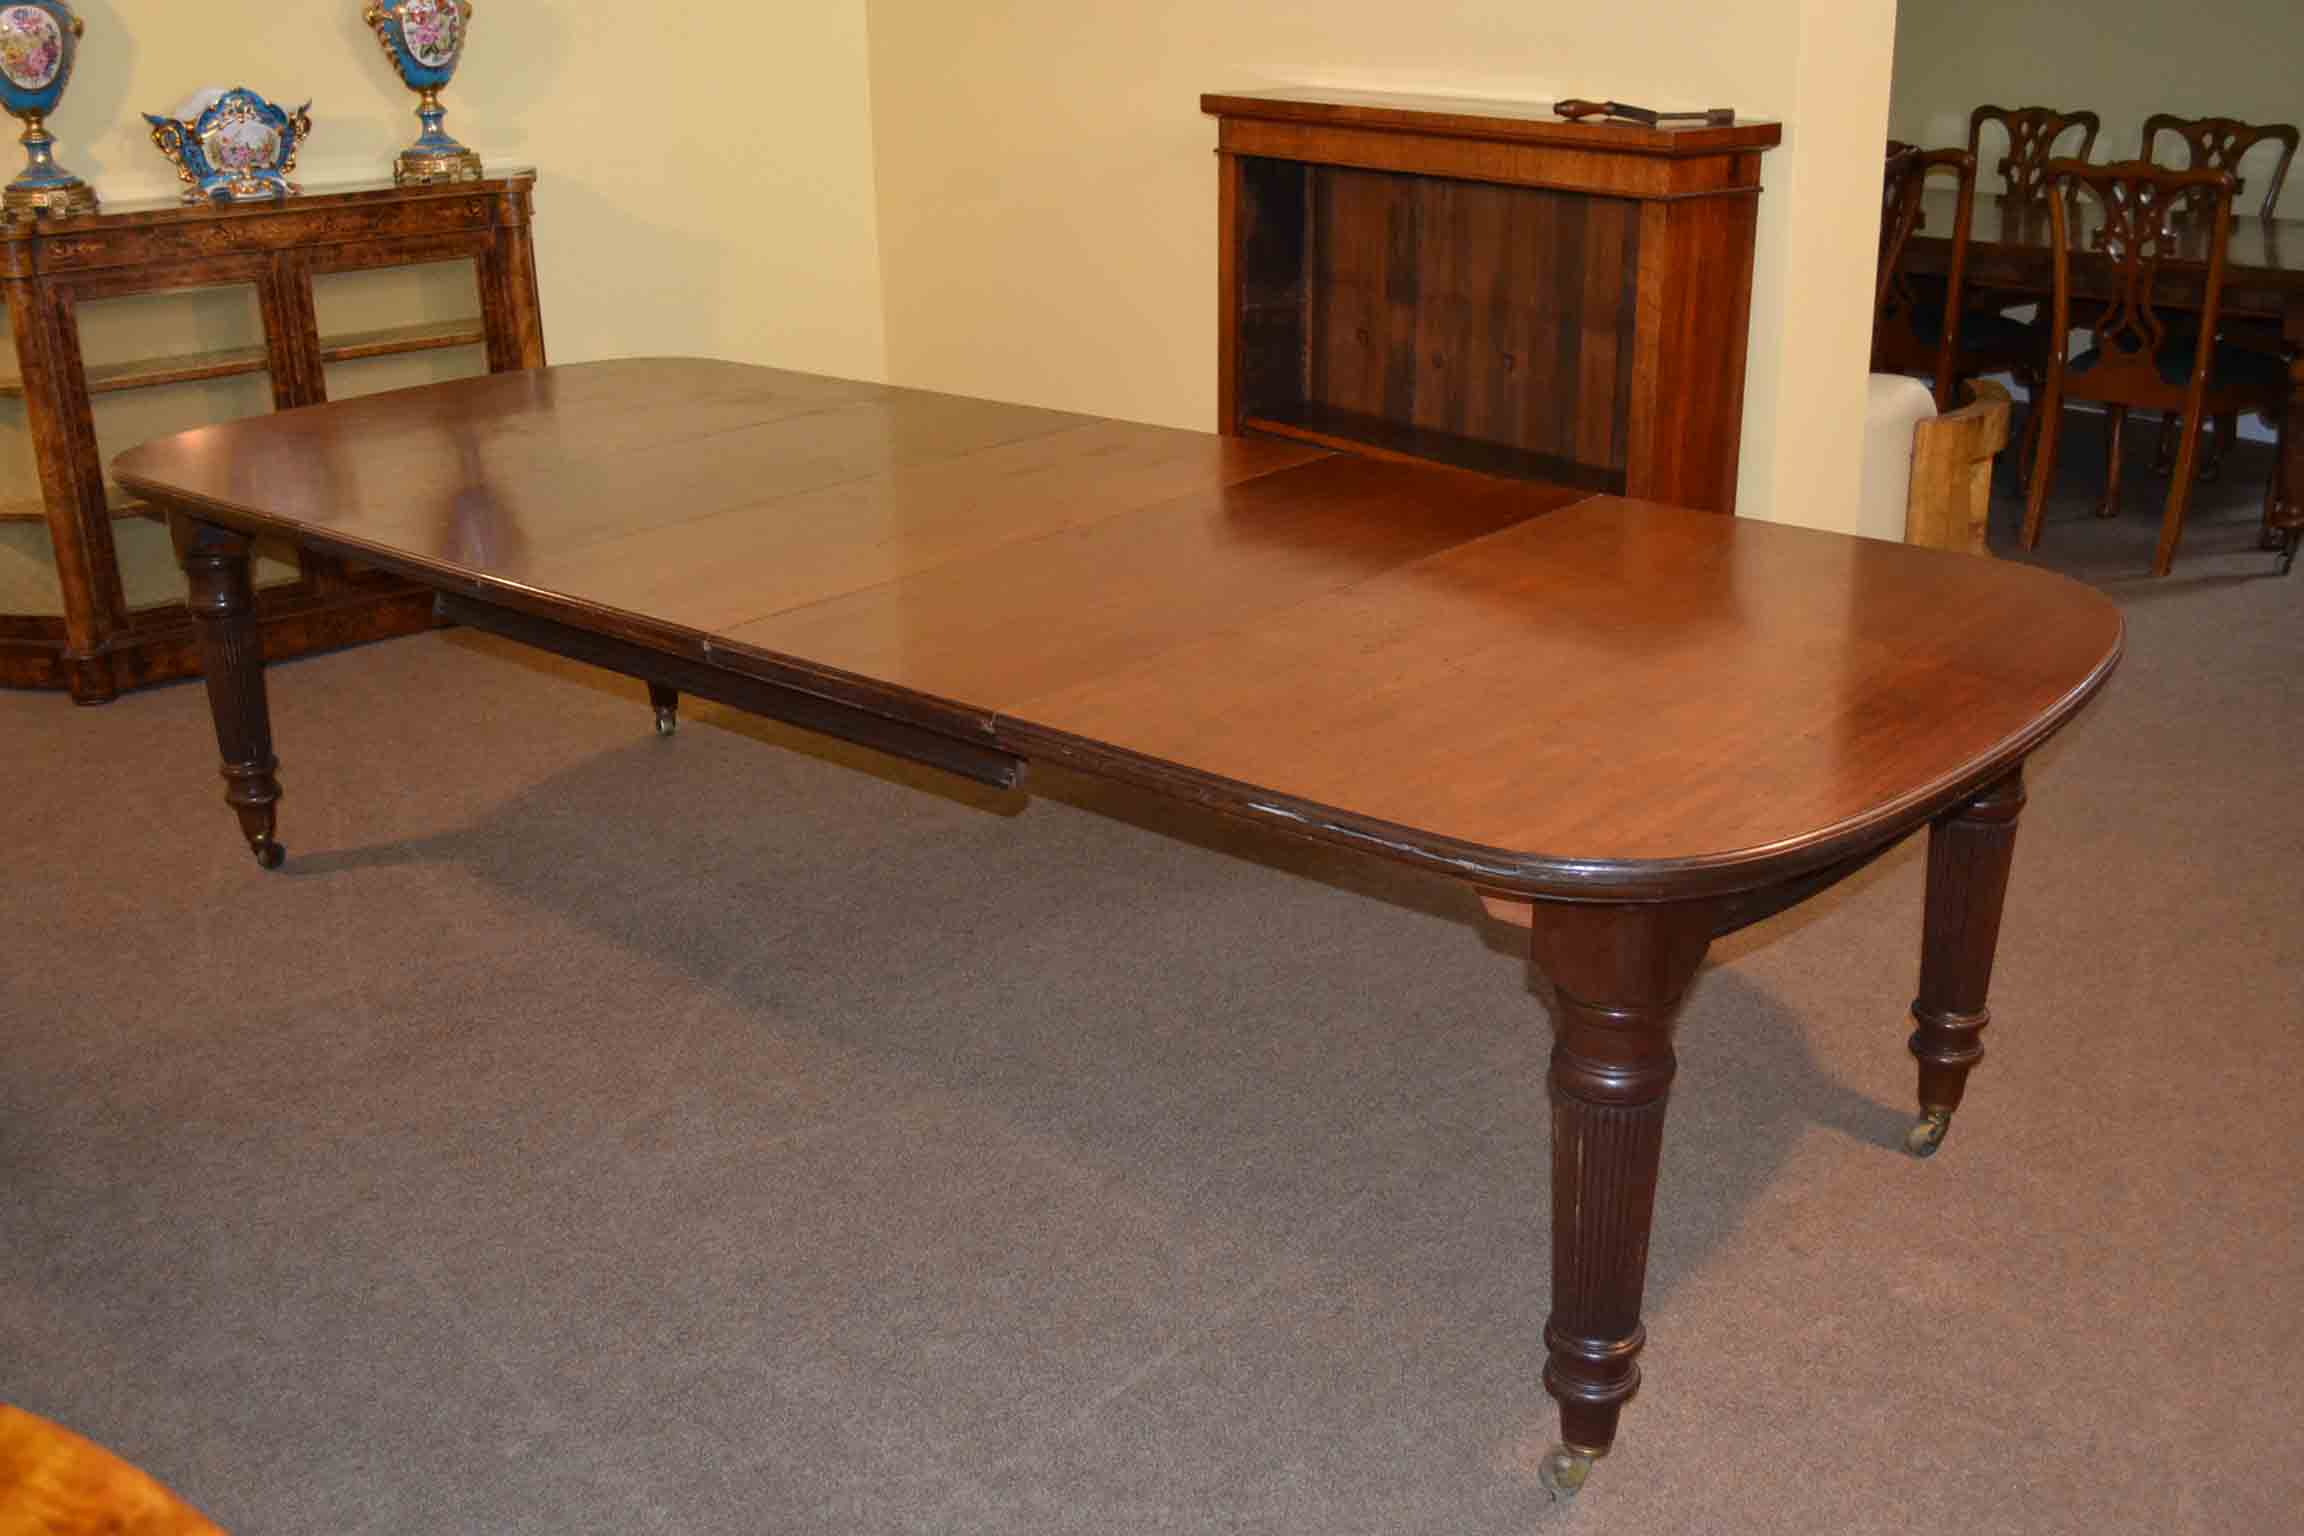 Antique Maple Dining Room Set 10ft Antique Victorian Dining Table C1880 By Maple Co